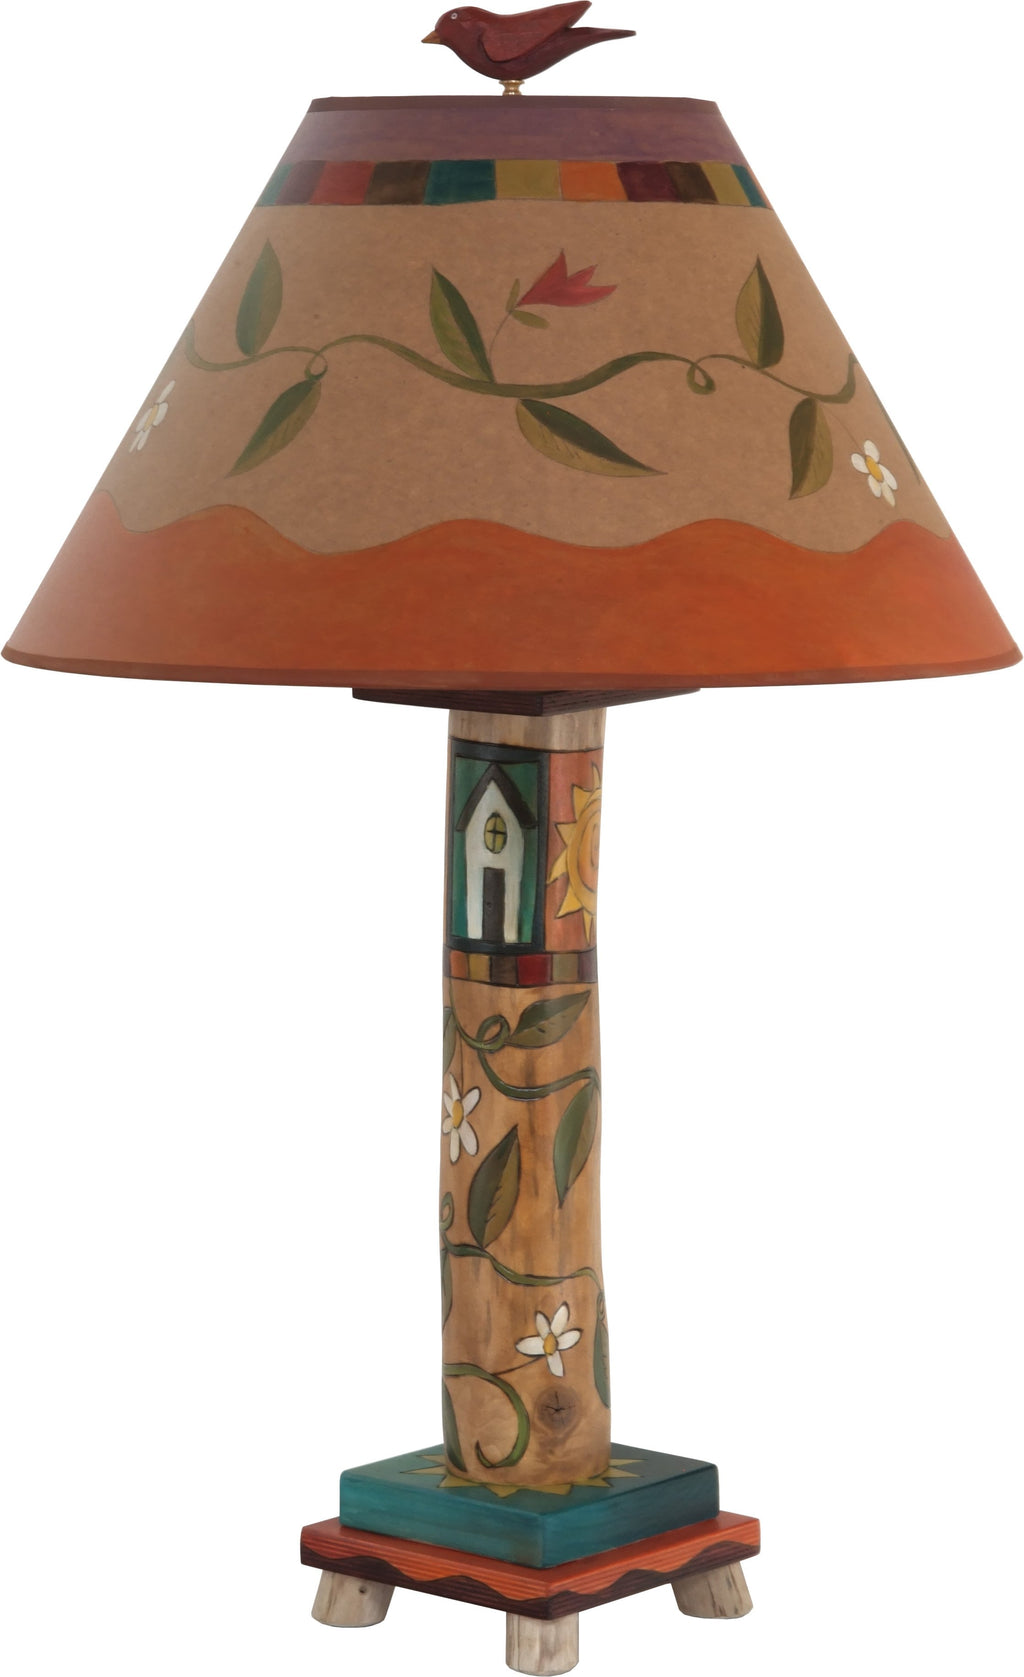 Log Table Lamp –  Elegant and neutral color palette table lamp with vine motifs and symbolic block icons